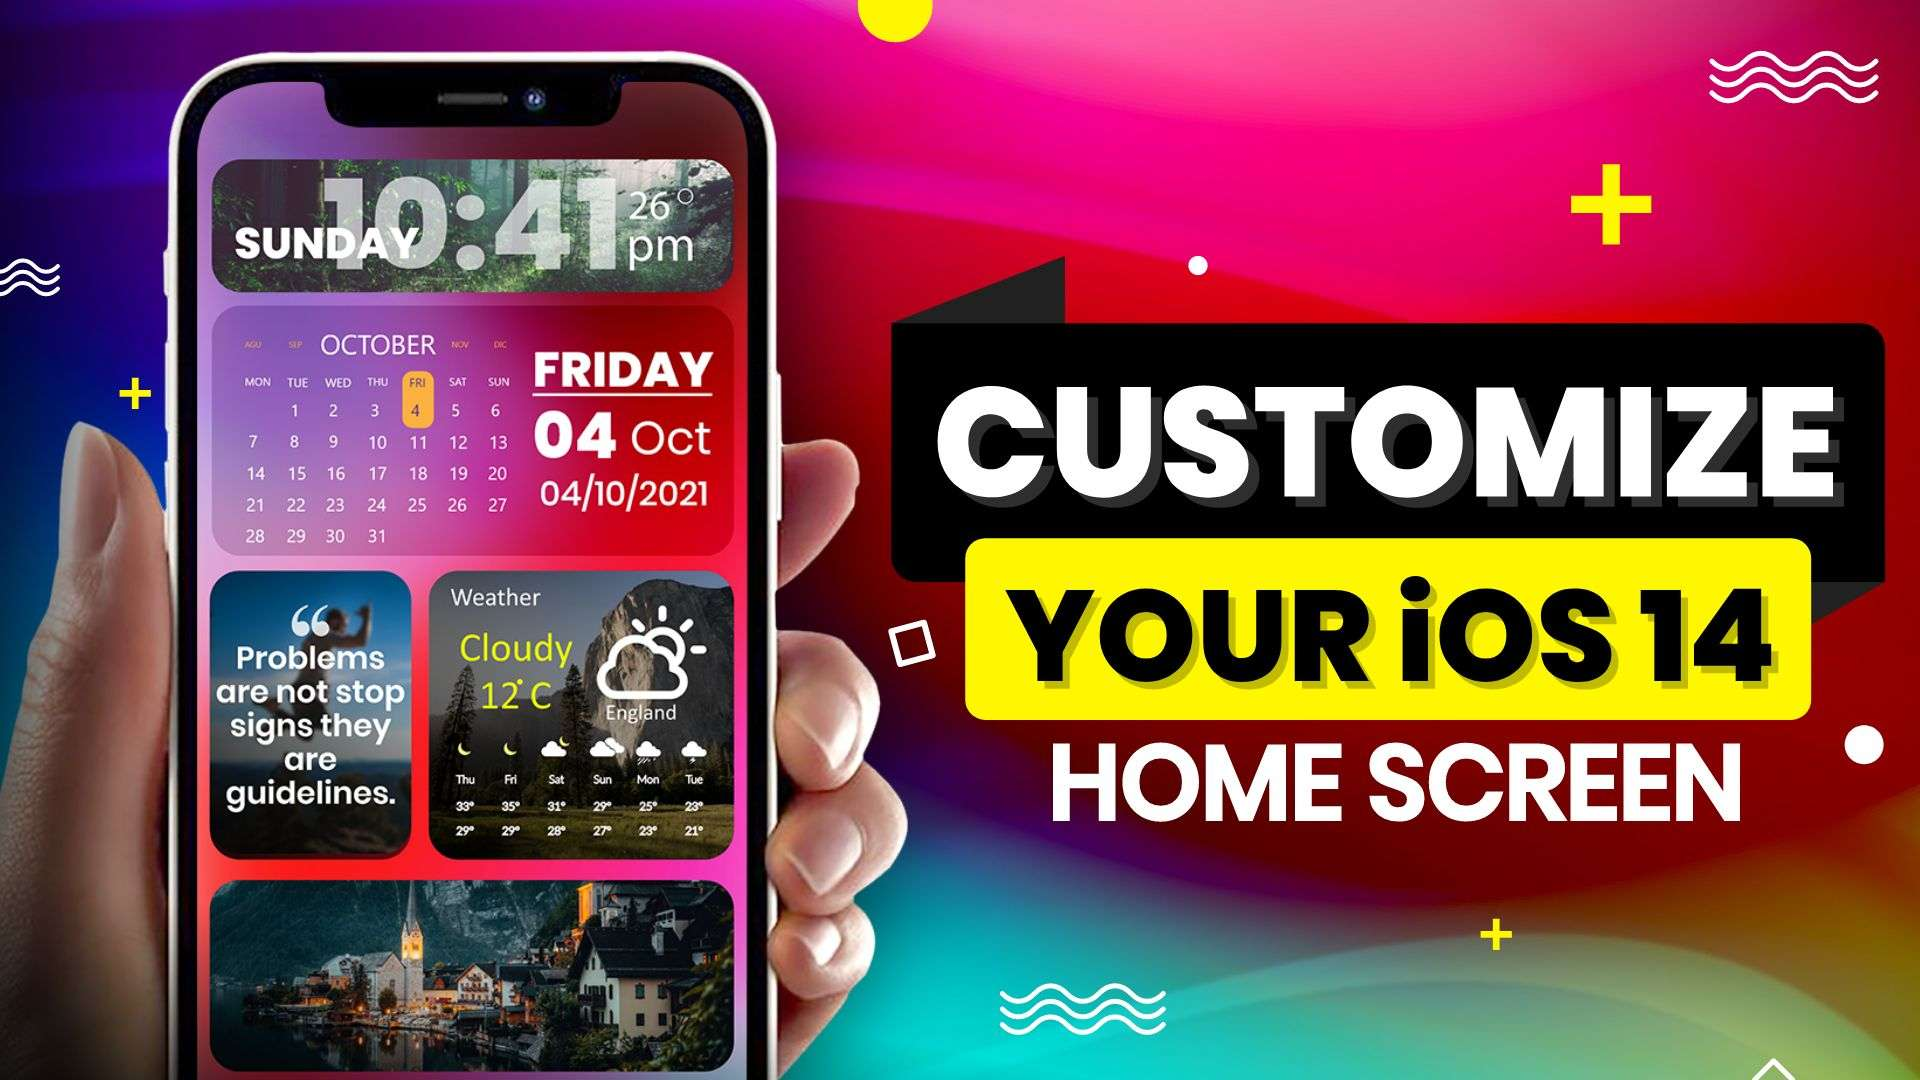 How to customize iOS 14 home screen